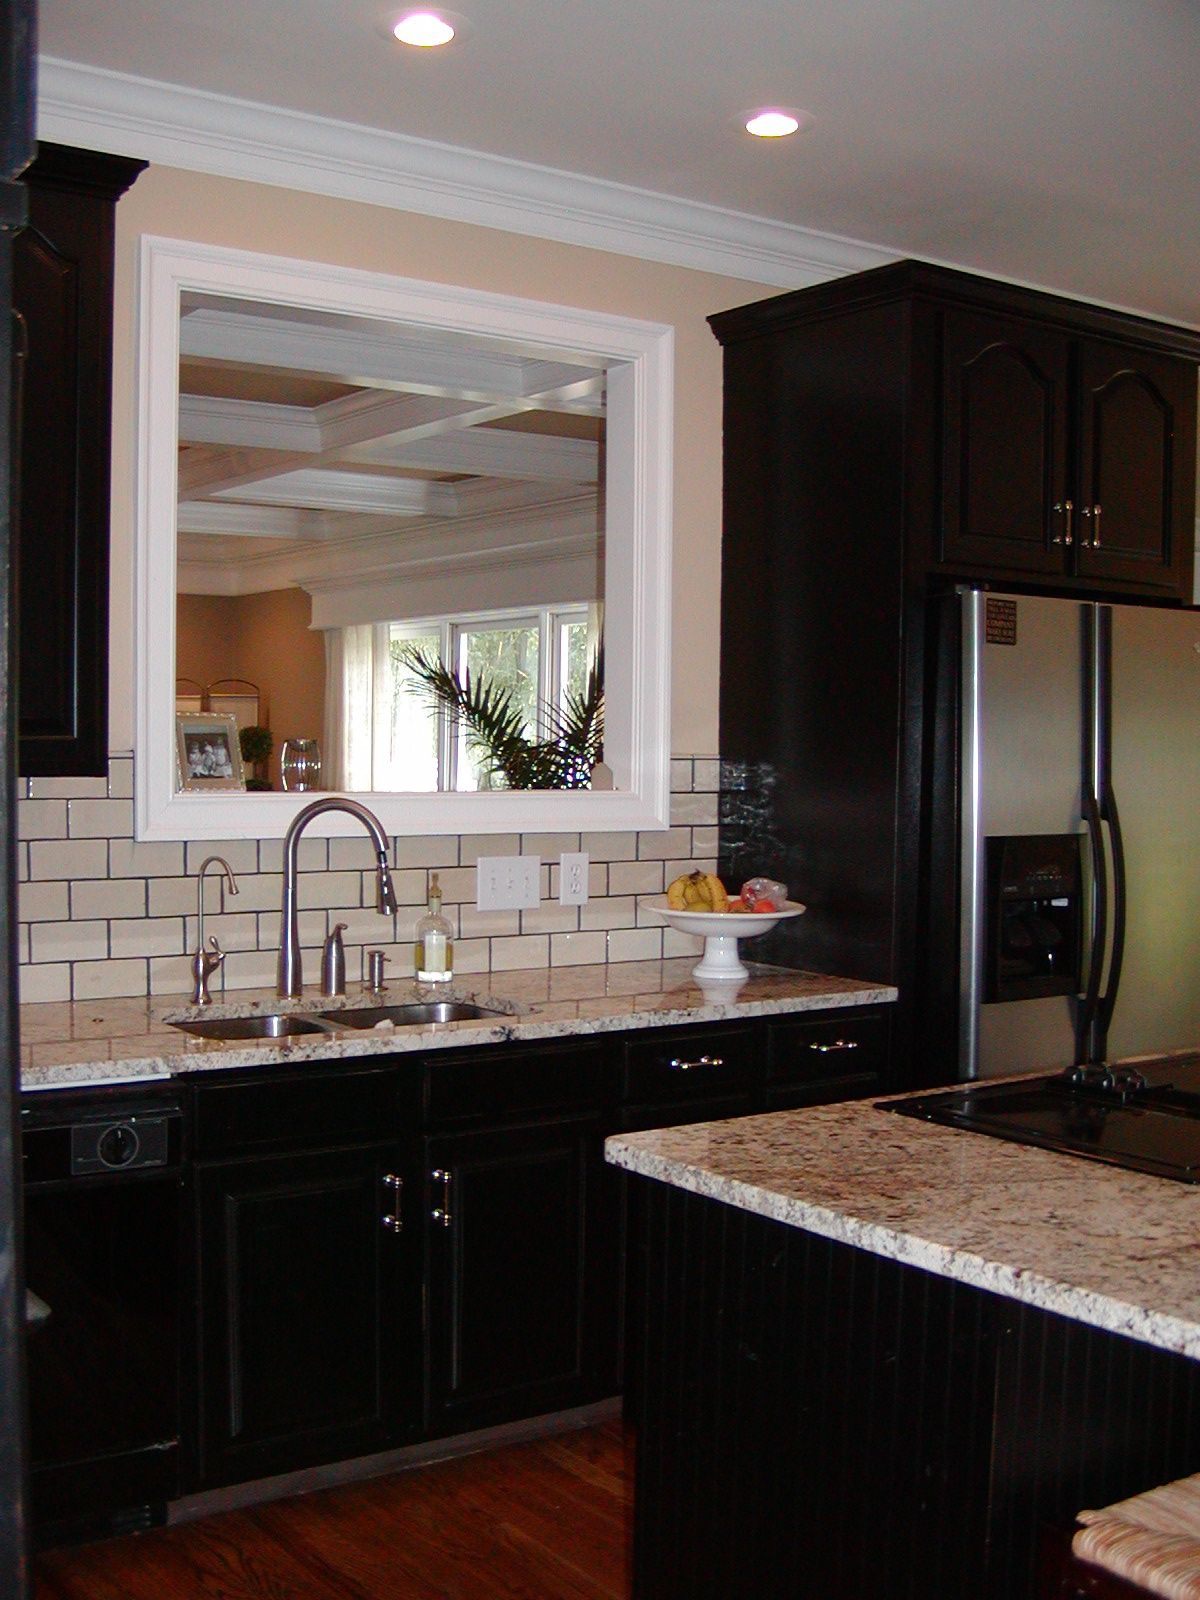 Dramatic Black In The Kitchen Before And After Espresso Kitchen Cabinets Espresso Cabinets Backsplash With Dark Cabinets